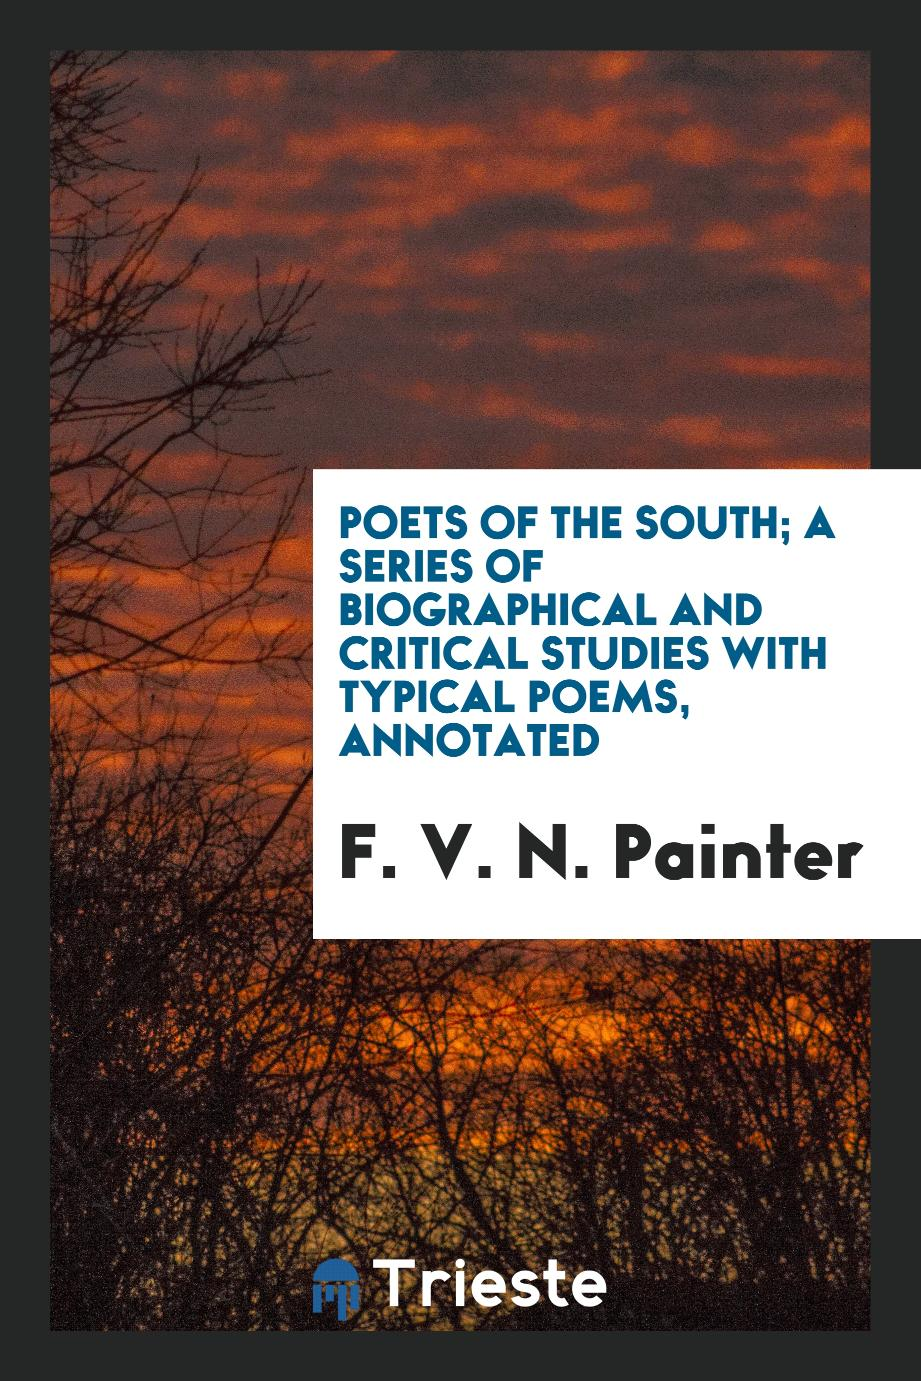 Poets of the South; a series of biographical and critical studies with typical poems, annotated